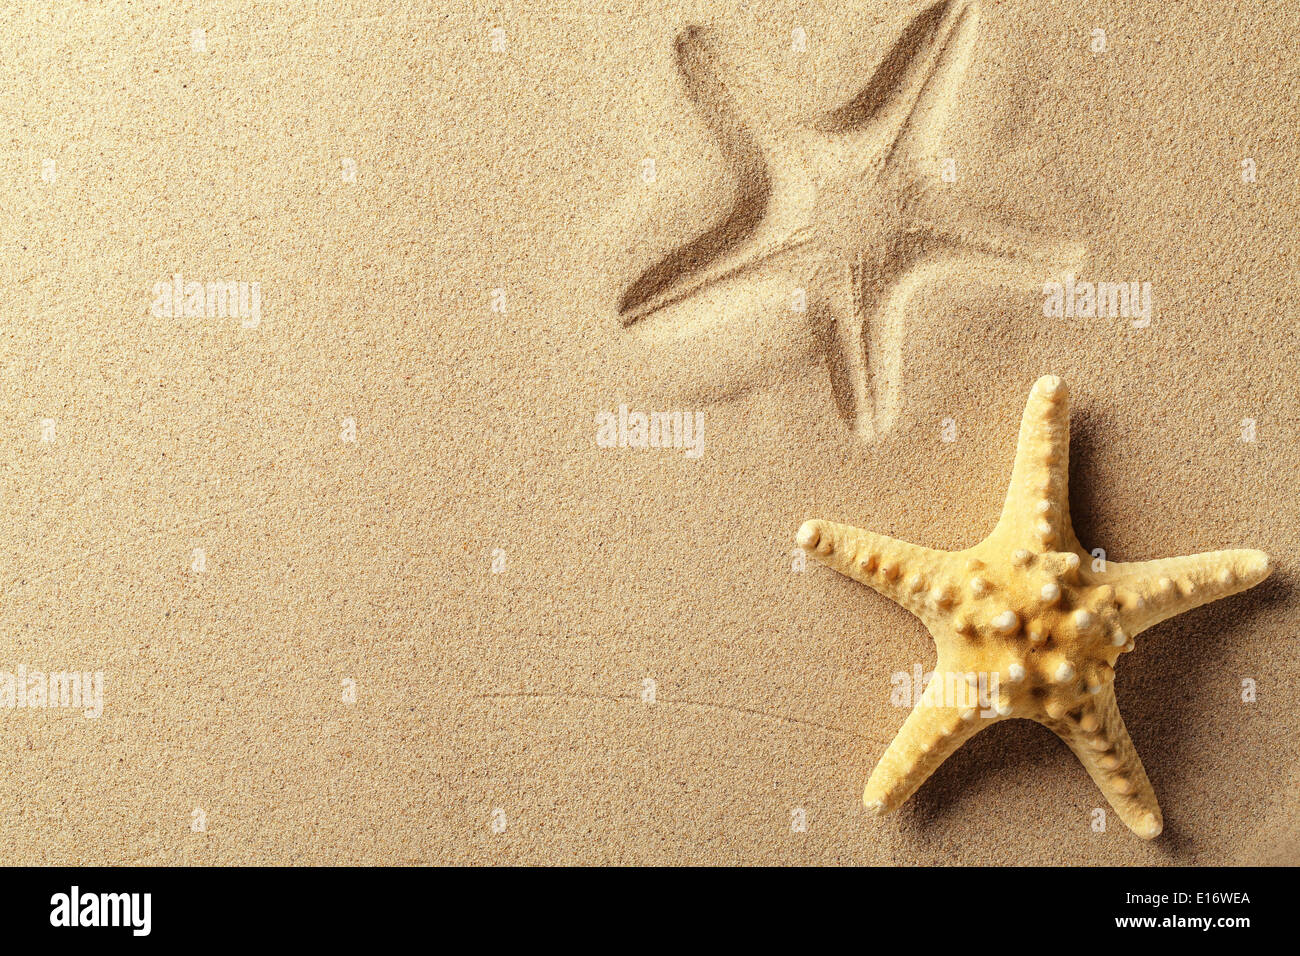 Seashell with imprint on beach sand - Stock Image